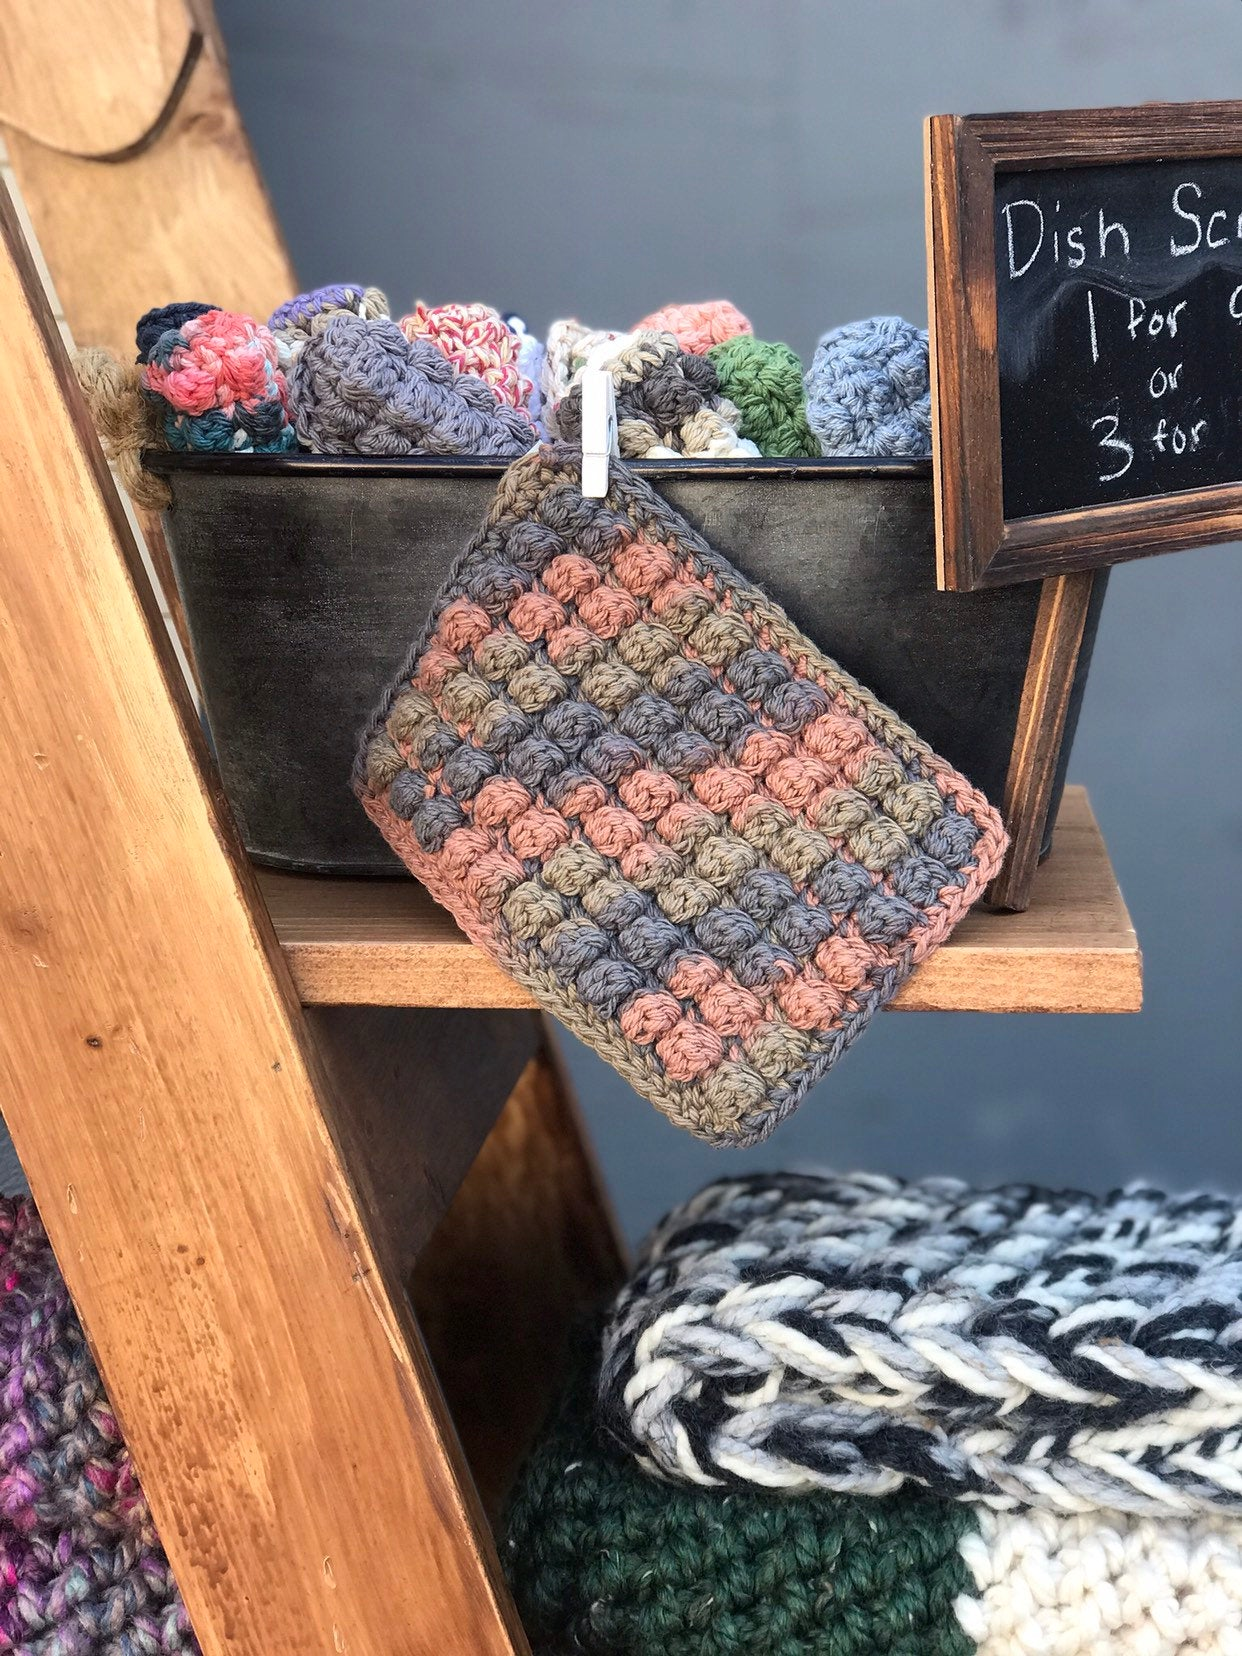 Super Scrubby Dish Cloth, Sustainable, Reusable by Cali & Cleveland